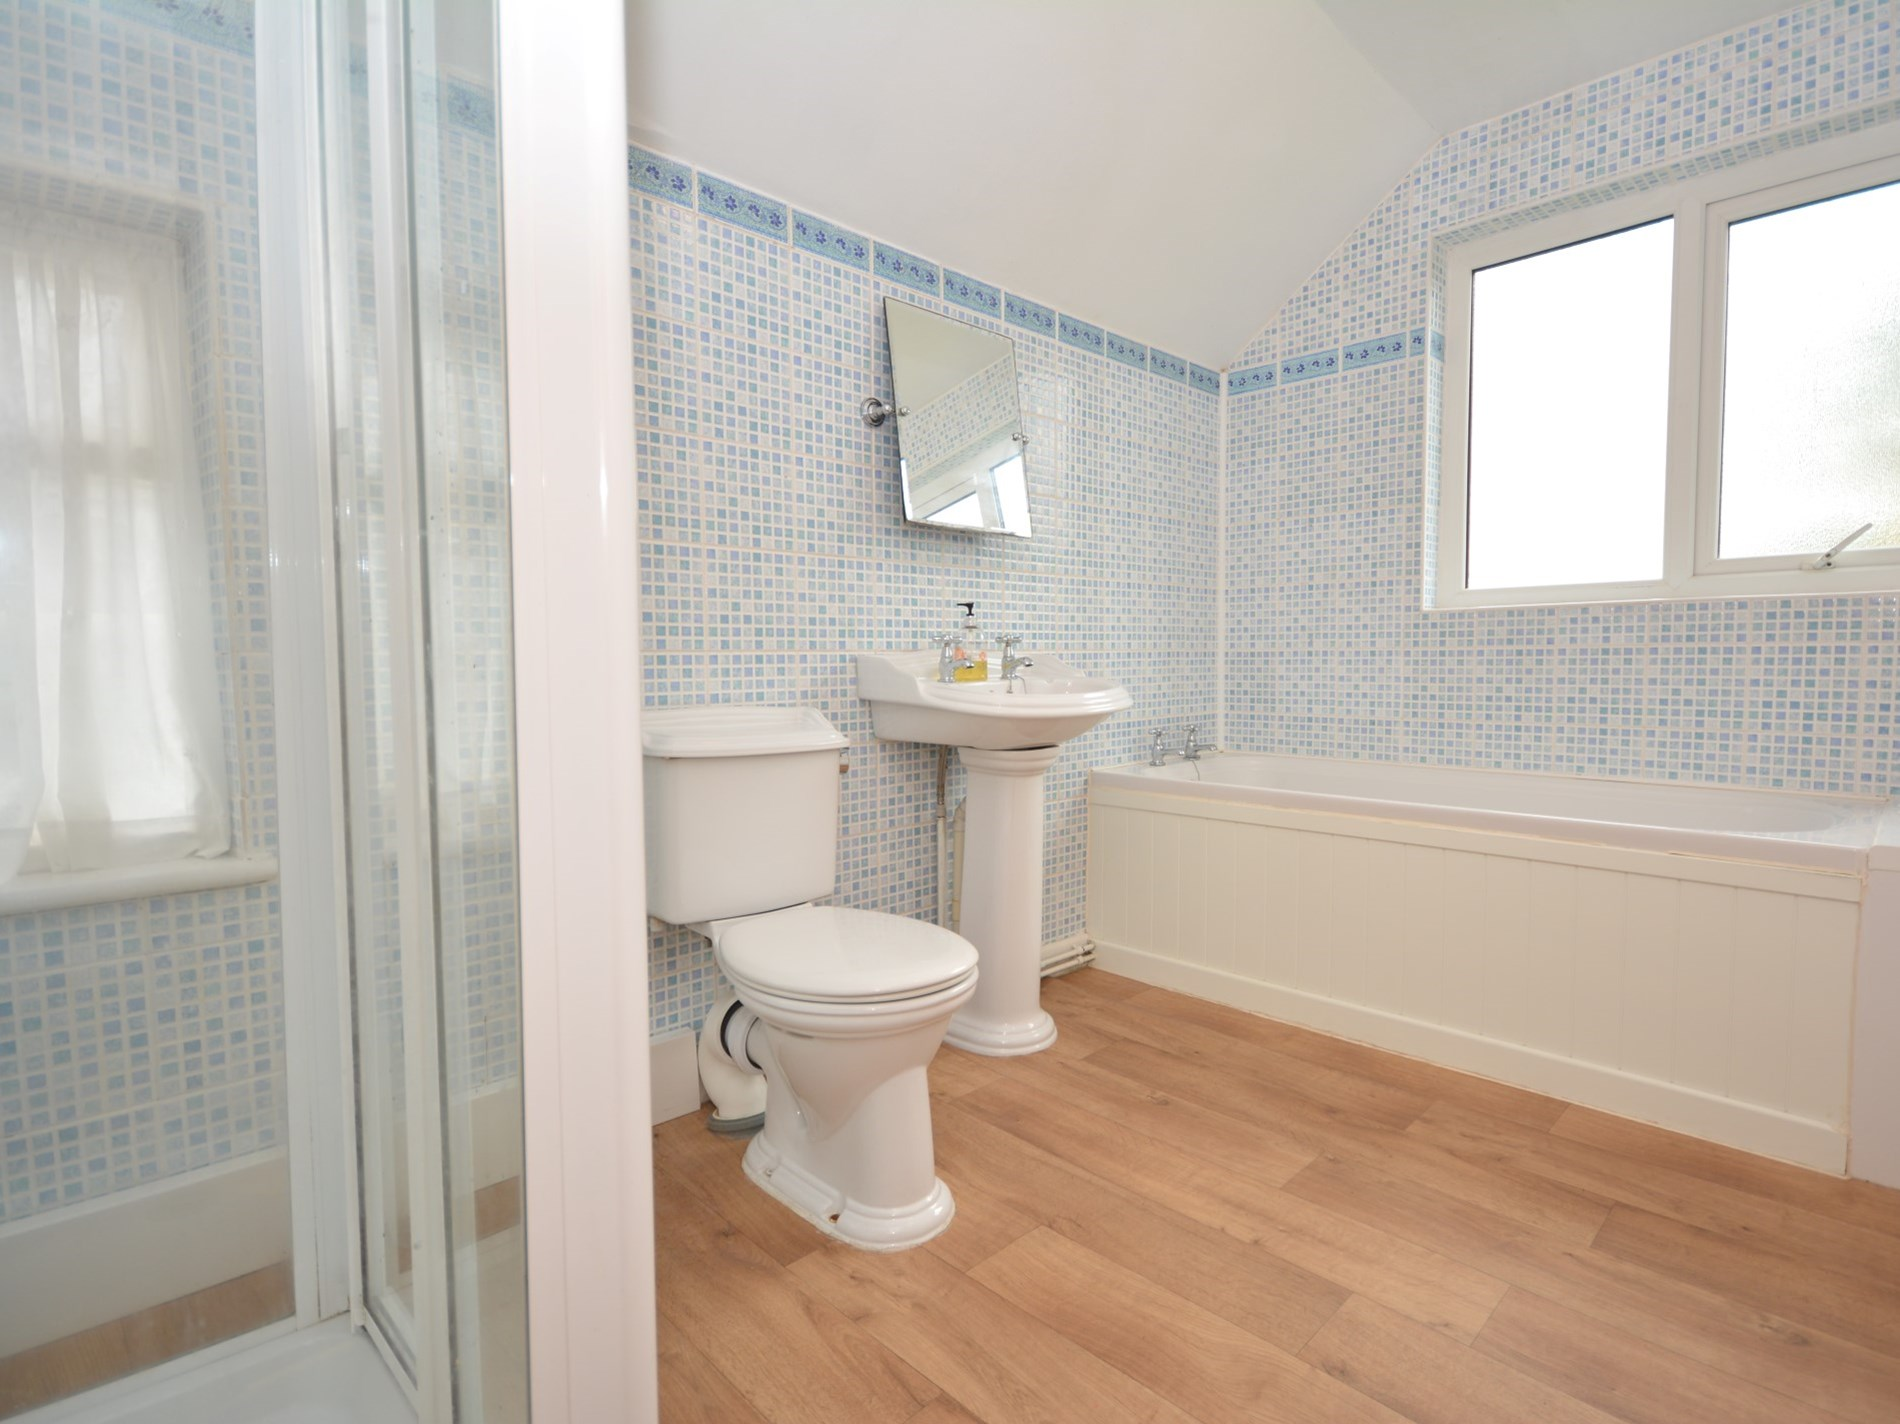 2 Bedroom Cottage in Swansea, Pembrokeshire and the South